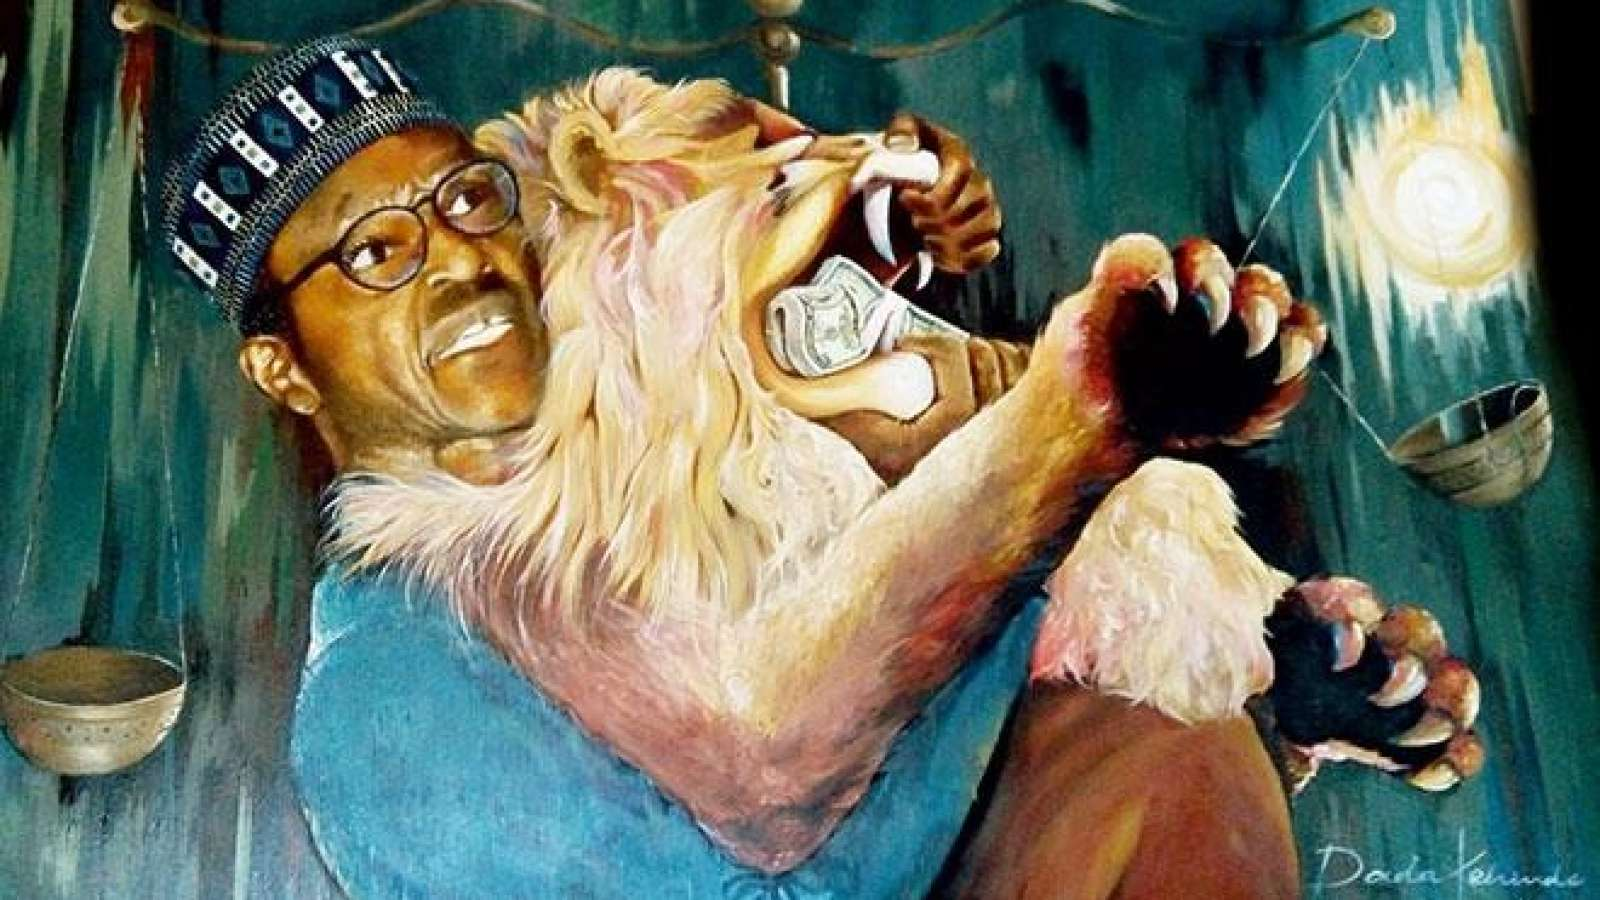 rodents force Buhari out of office